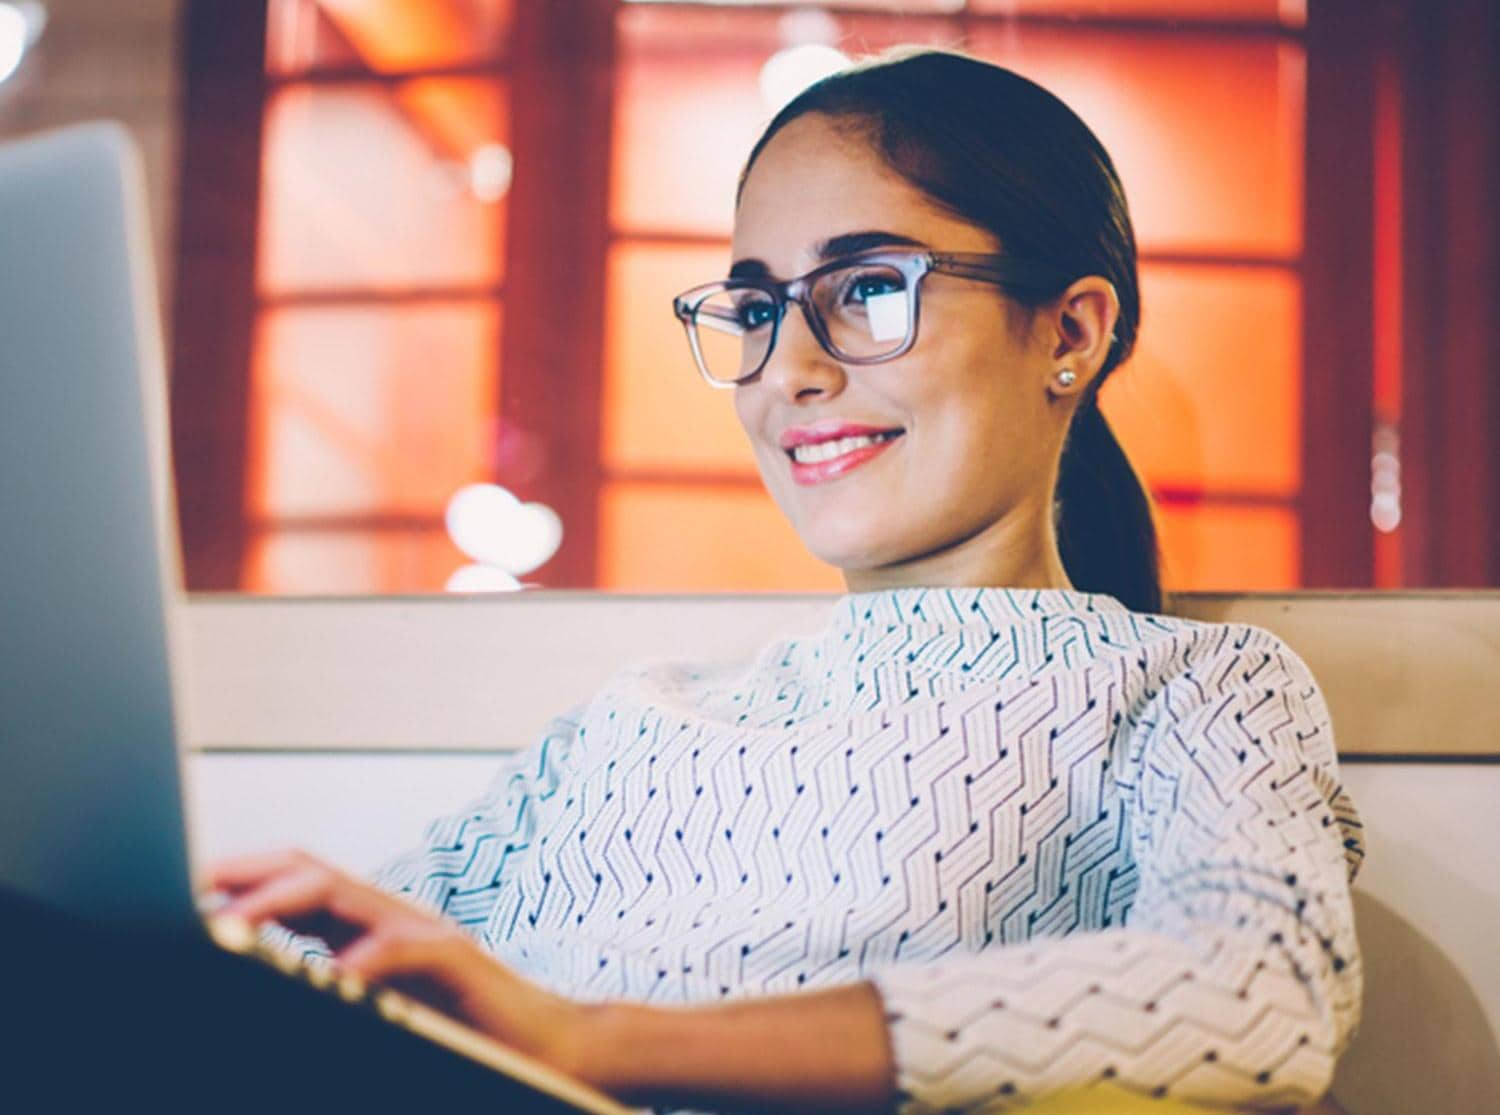 Woman with glasses on laptop smiling